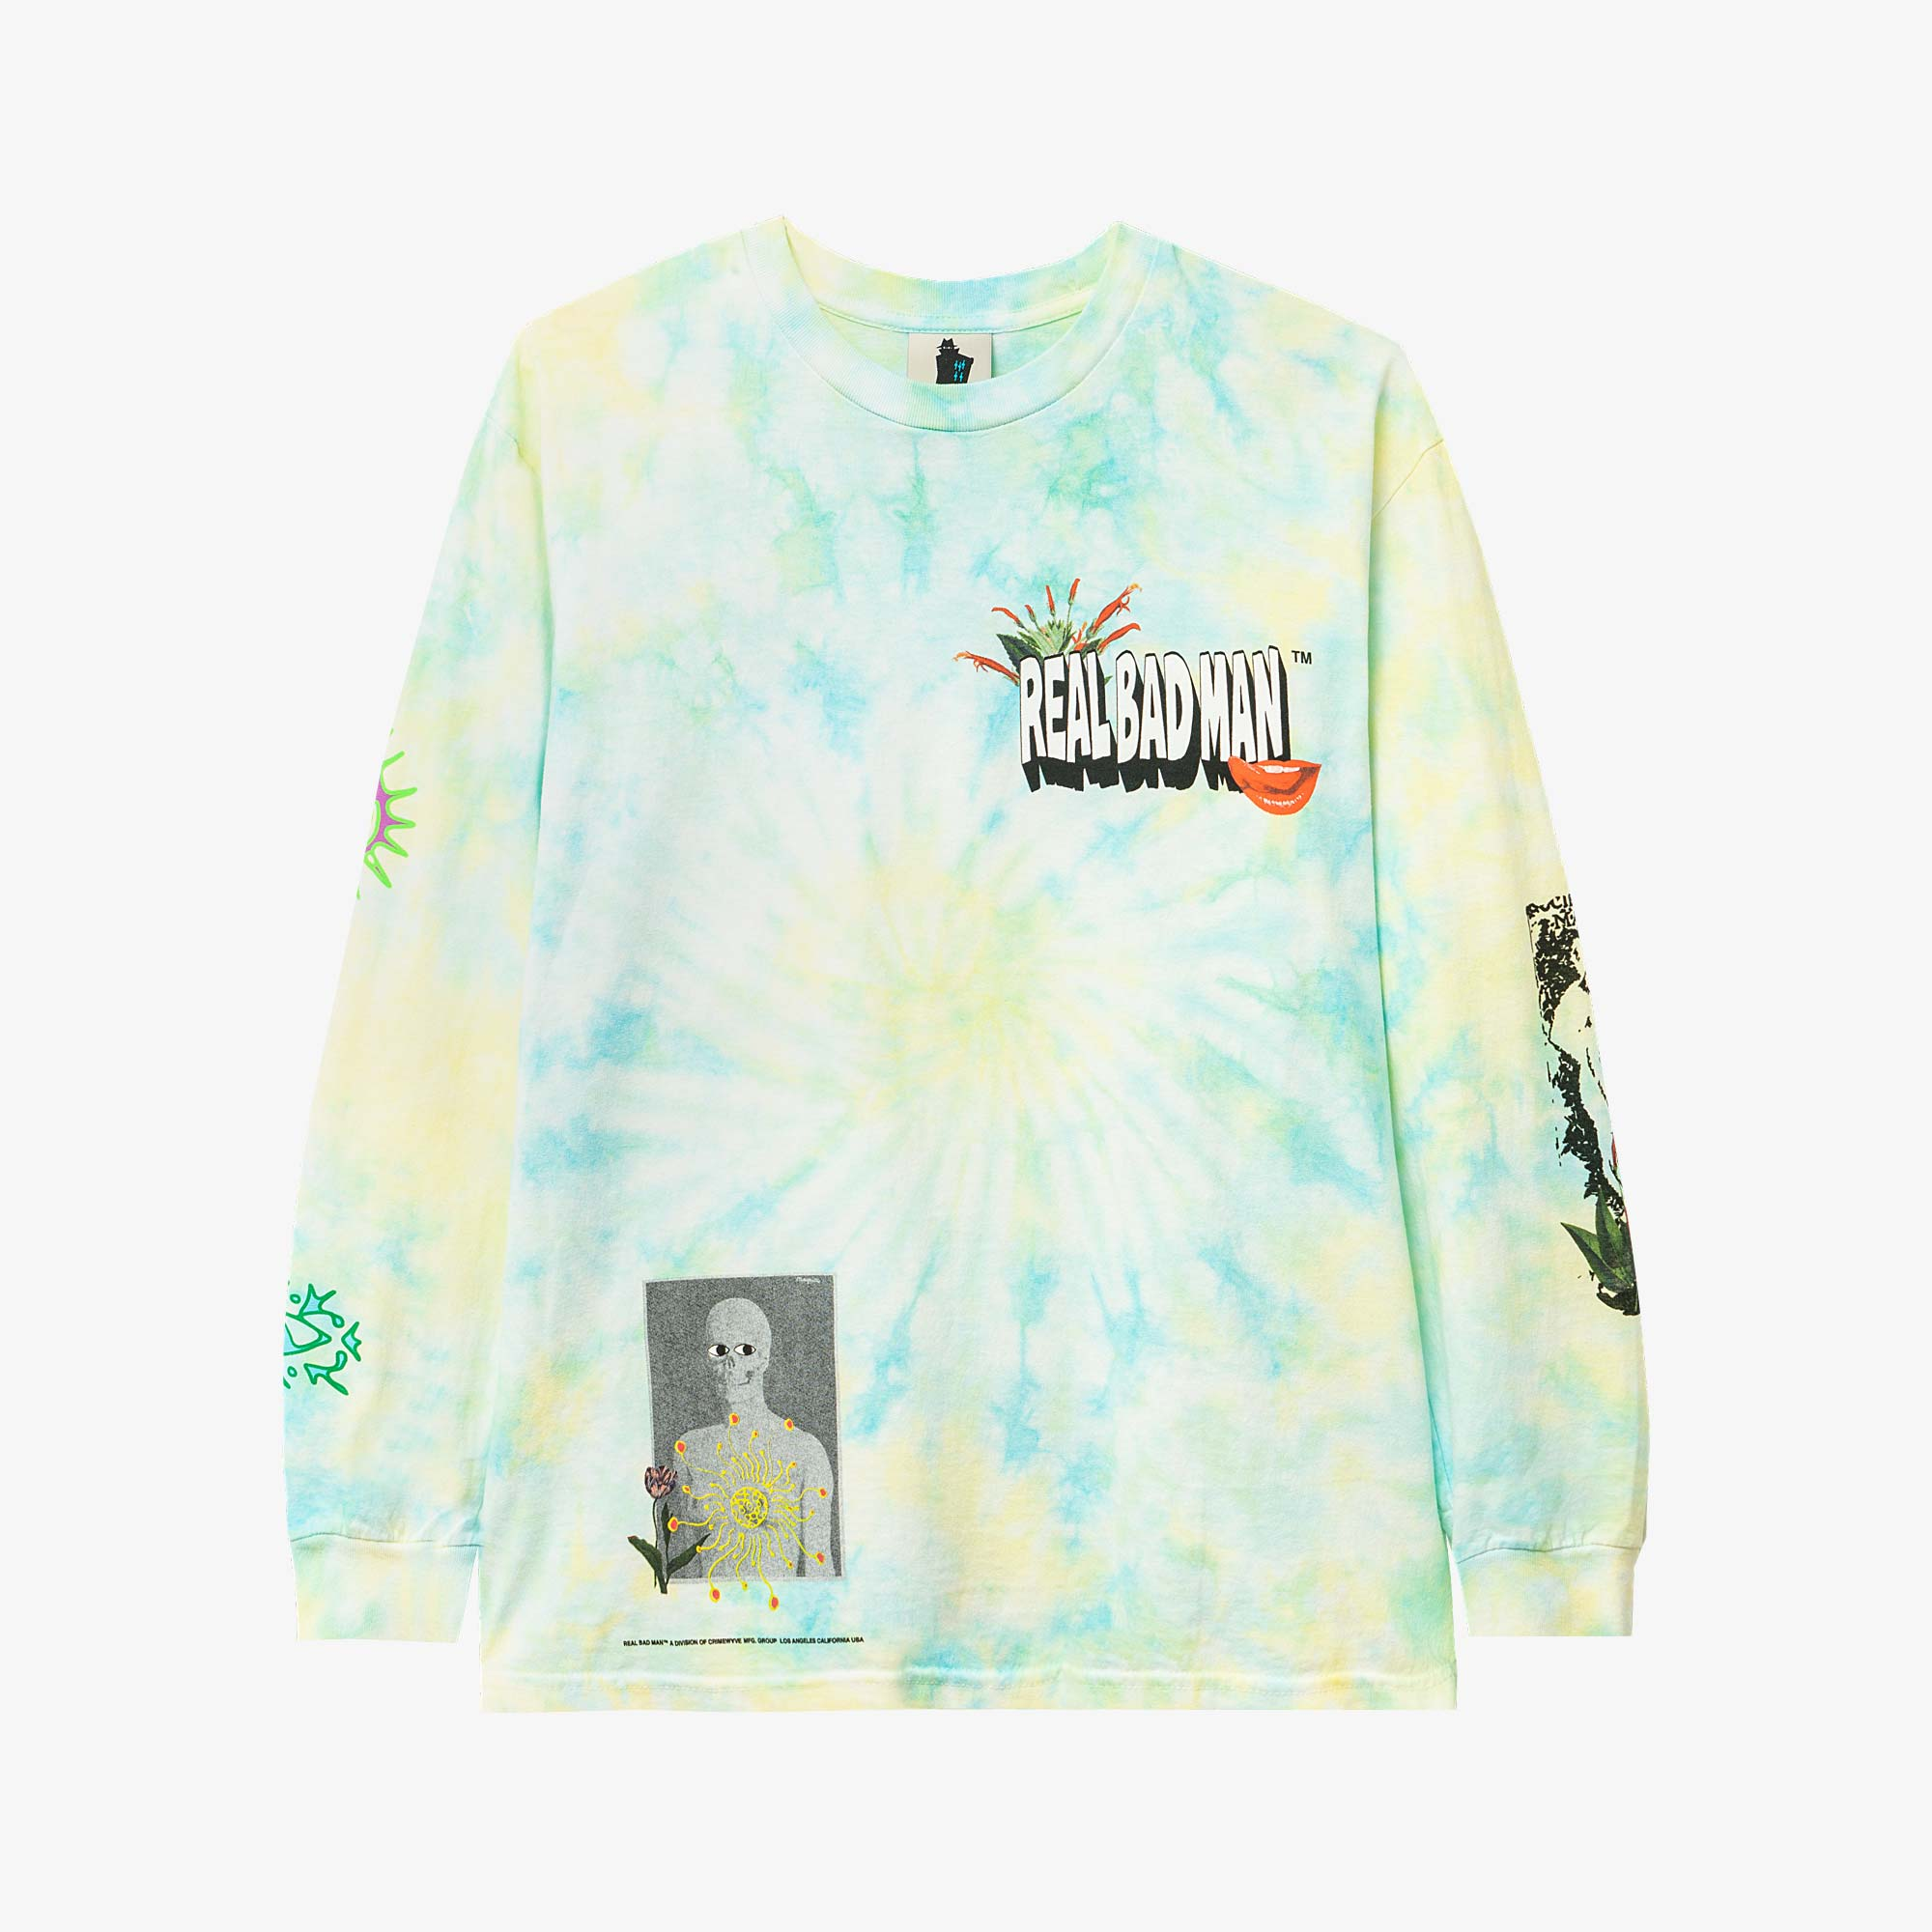 Real Bad Man From Outer Space LS Tee - Aqua / Yellow 1